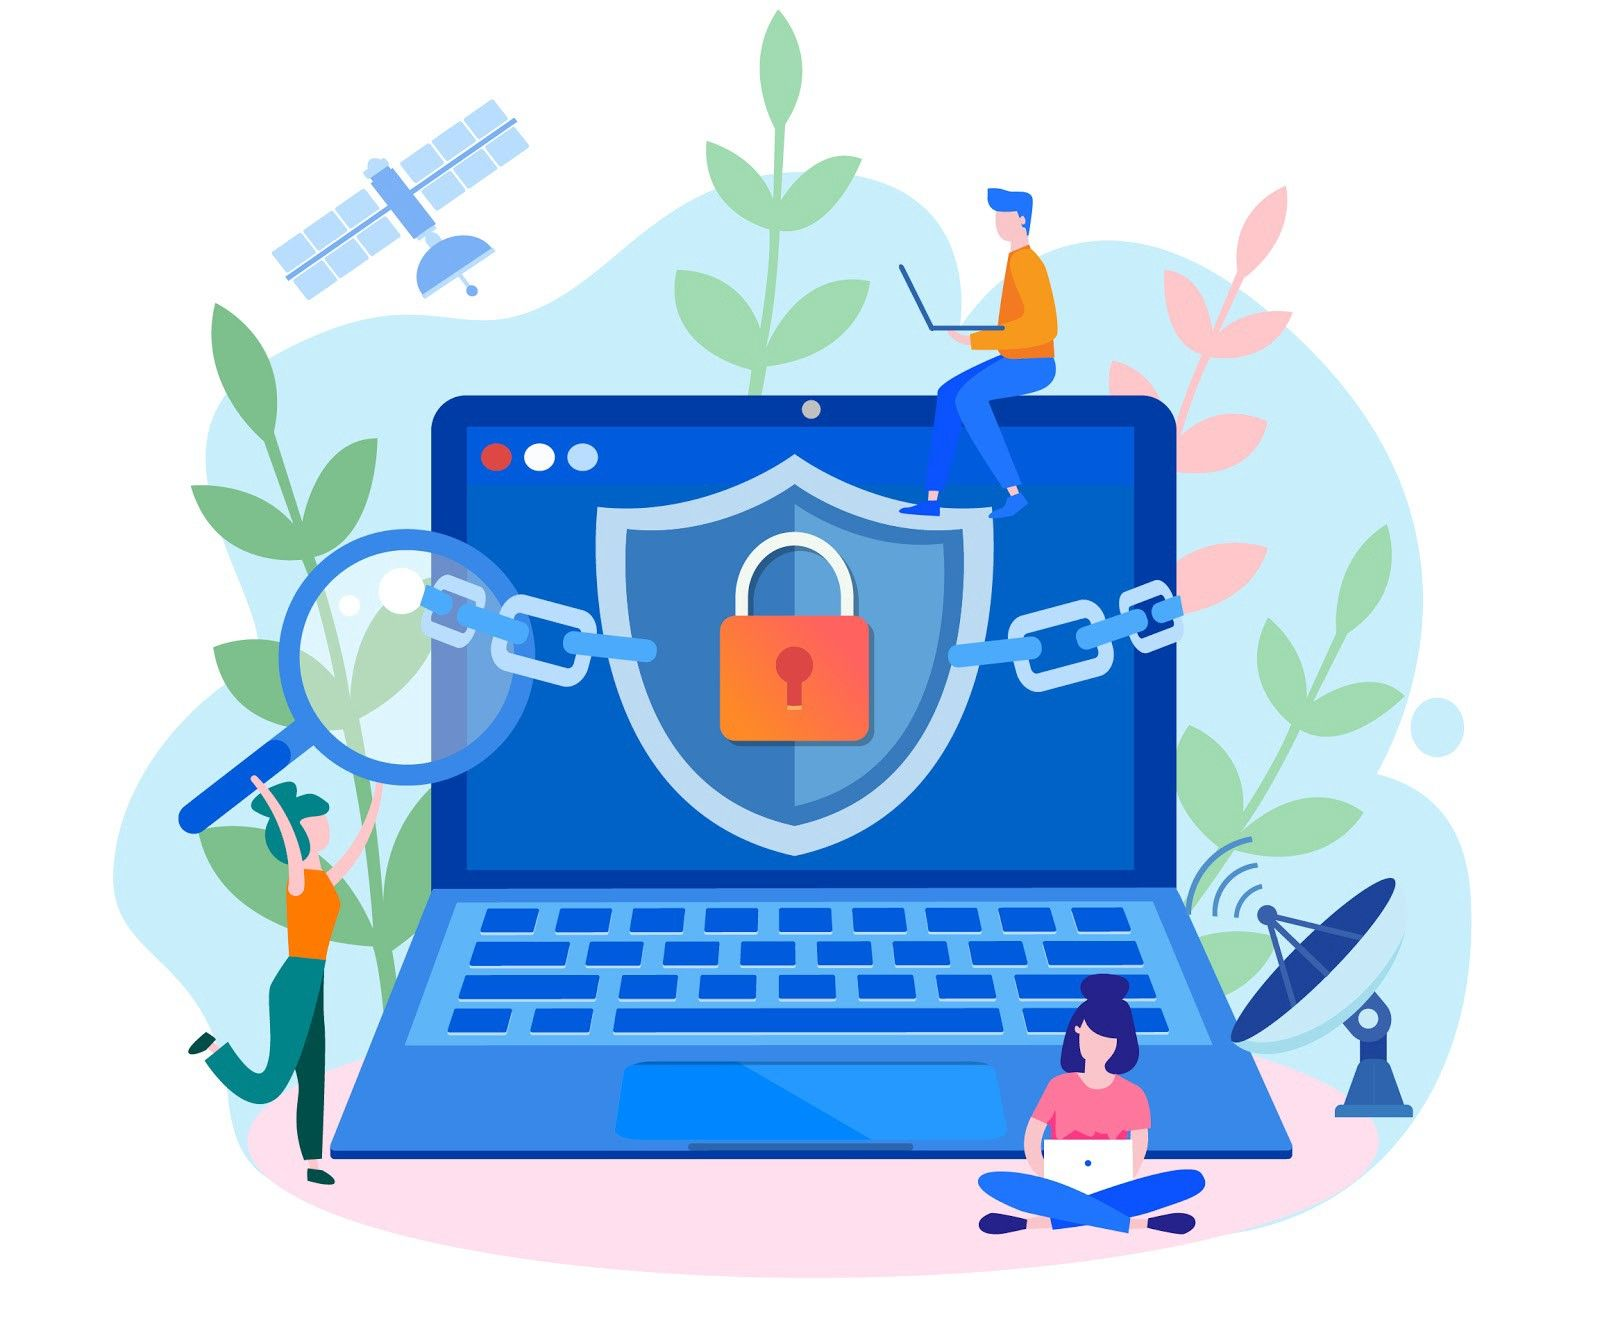 /5-tips-to-prevent-hackers-from-stealing-your-crypto-assets-e2243zig feature image